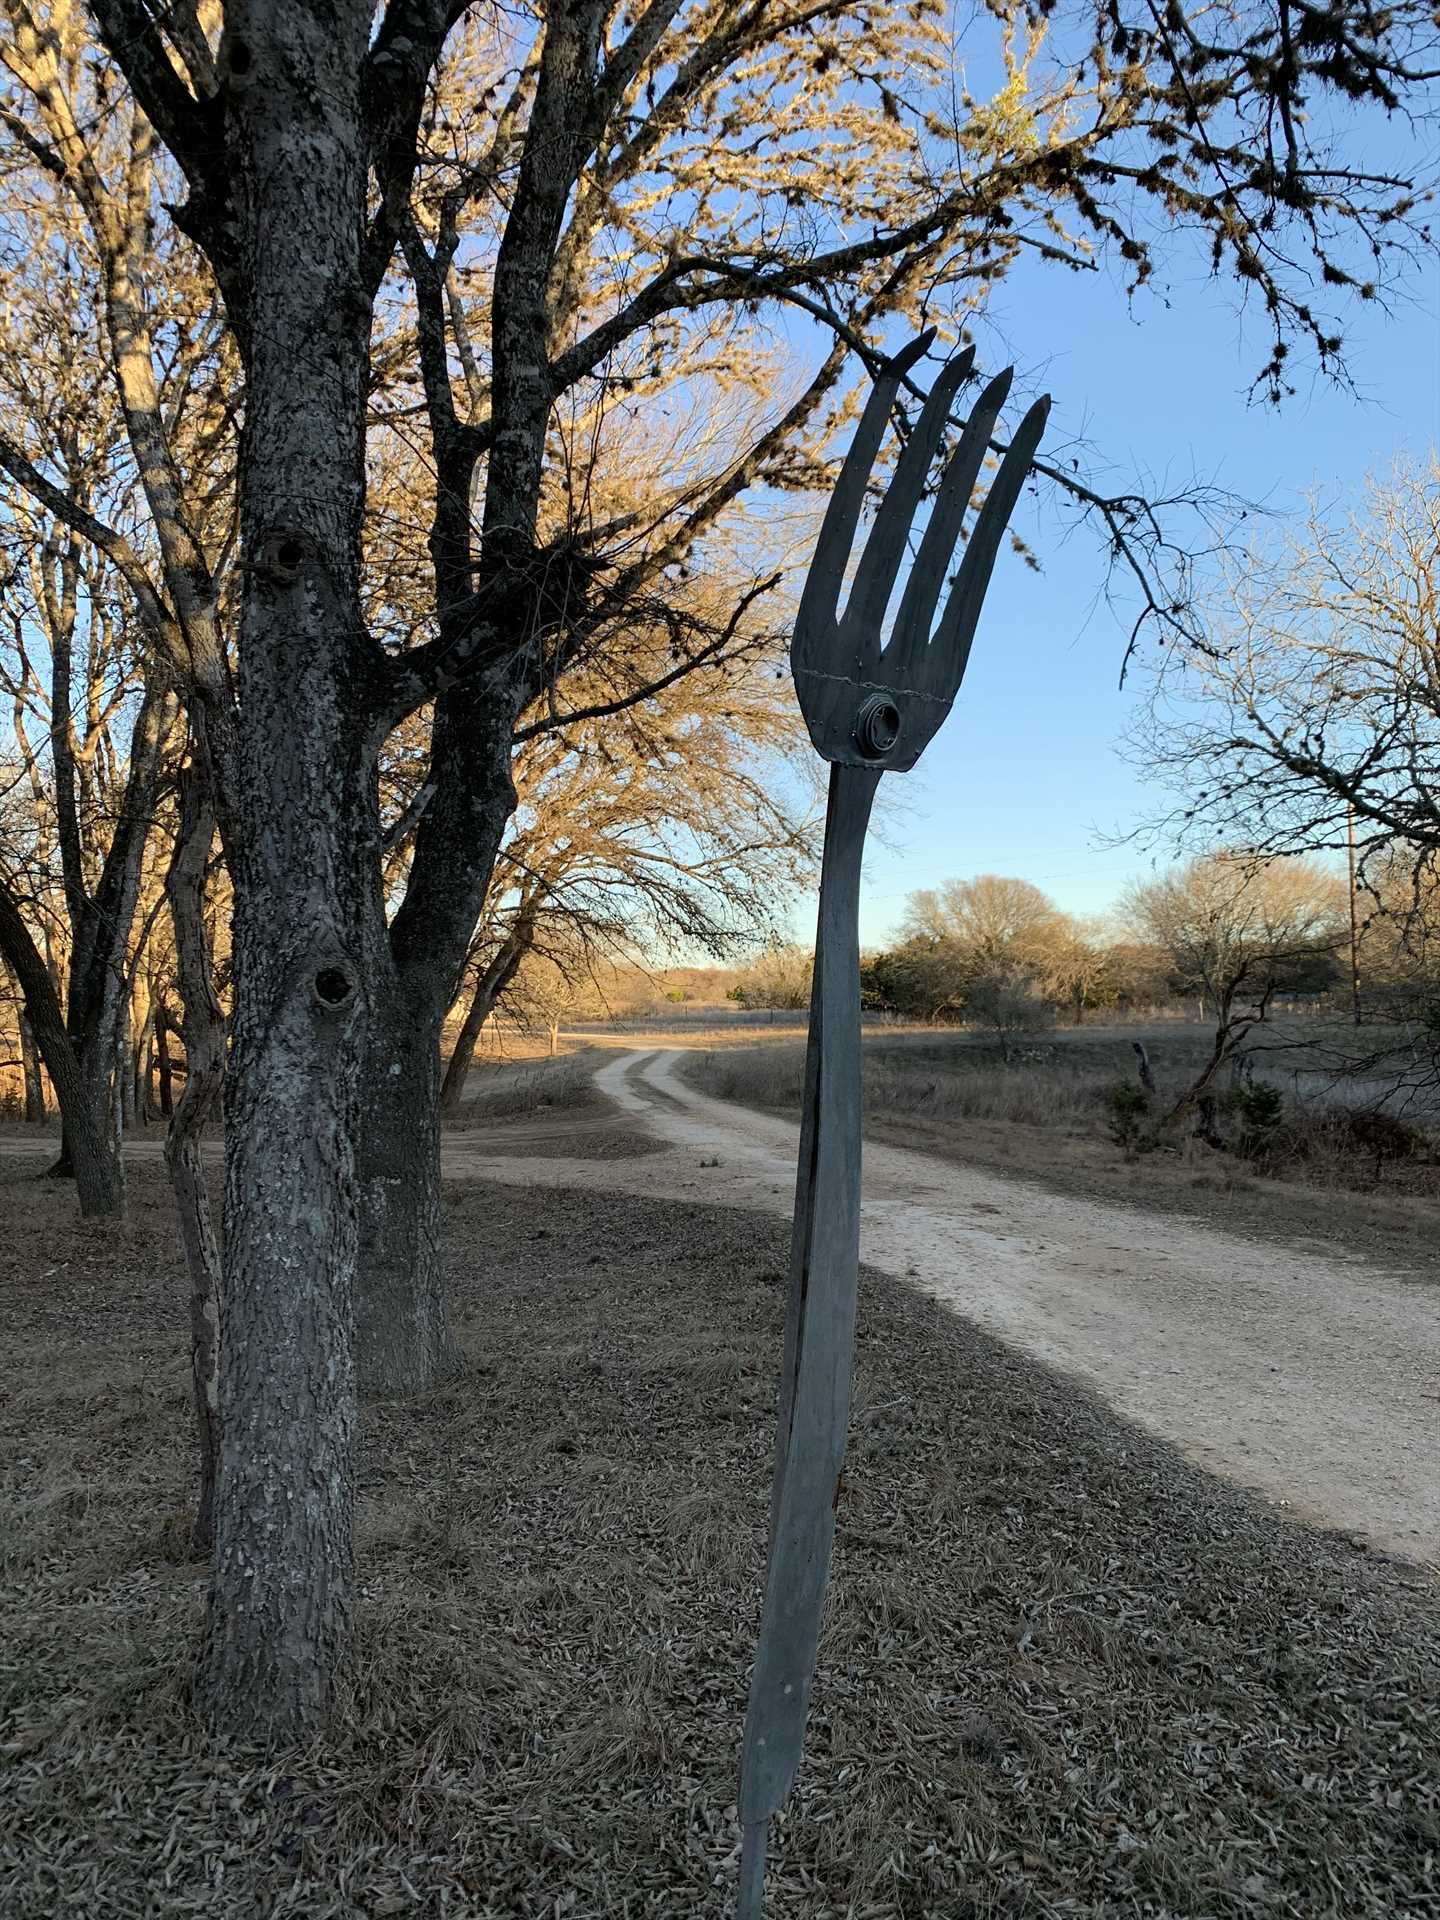 What do you do when you encounter a fork in the road? Well, luckily, this one's off to the side!